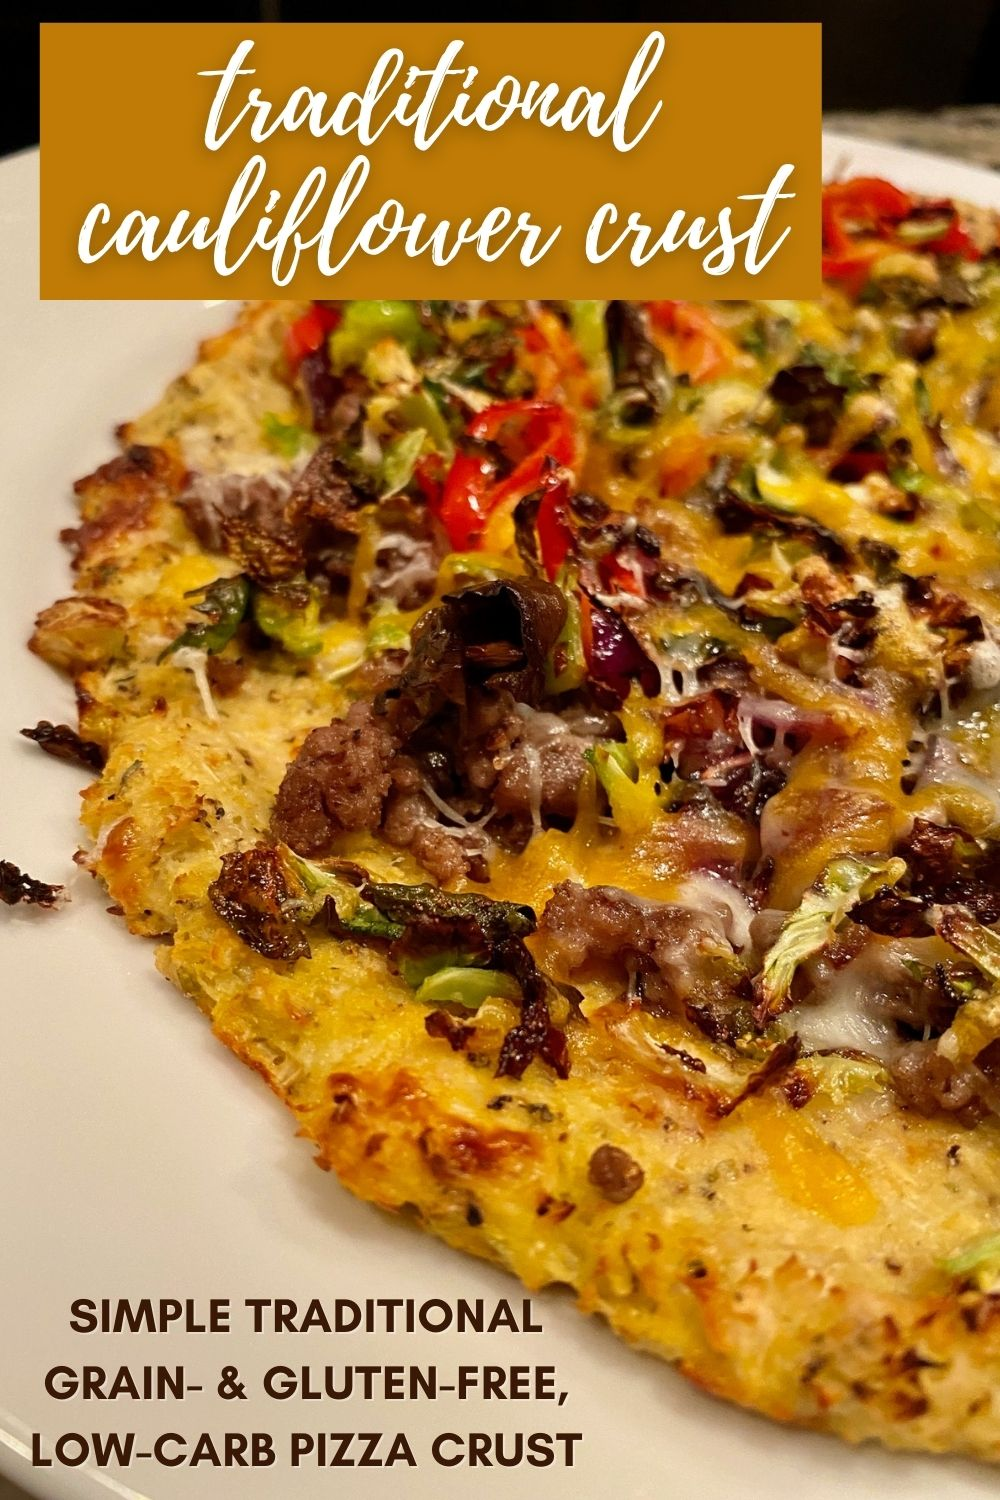 Traditional Cauliflower Crust Pizza | How to make cauliflower crust, an easy homemade recipe (does include some squeezing)...this cauliflower crust pizza only takes a few ingredients and is full of fiber & vitamins. Grain free, gluten-free, low carb and keto recipe option. #cauliflower #keto #grainfree #cauliflowercrust #gf #glutenfree #pizza